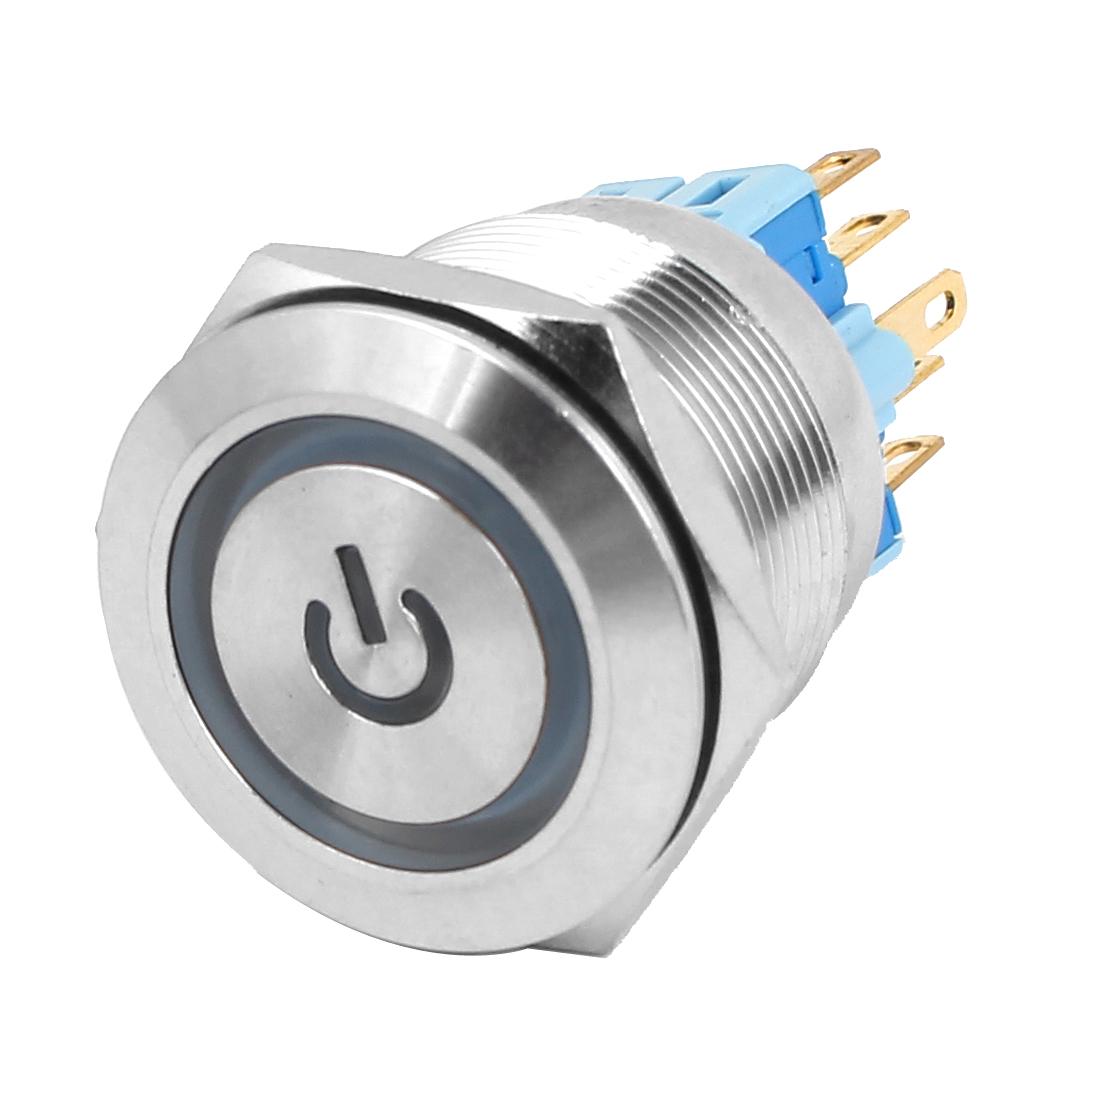 24V 25mm Dia Thread Green LED Lamp Momentary Metal Power Pushbutton Switch